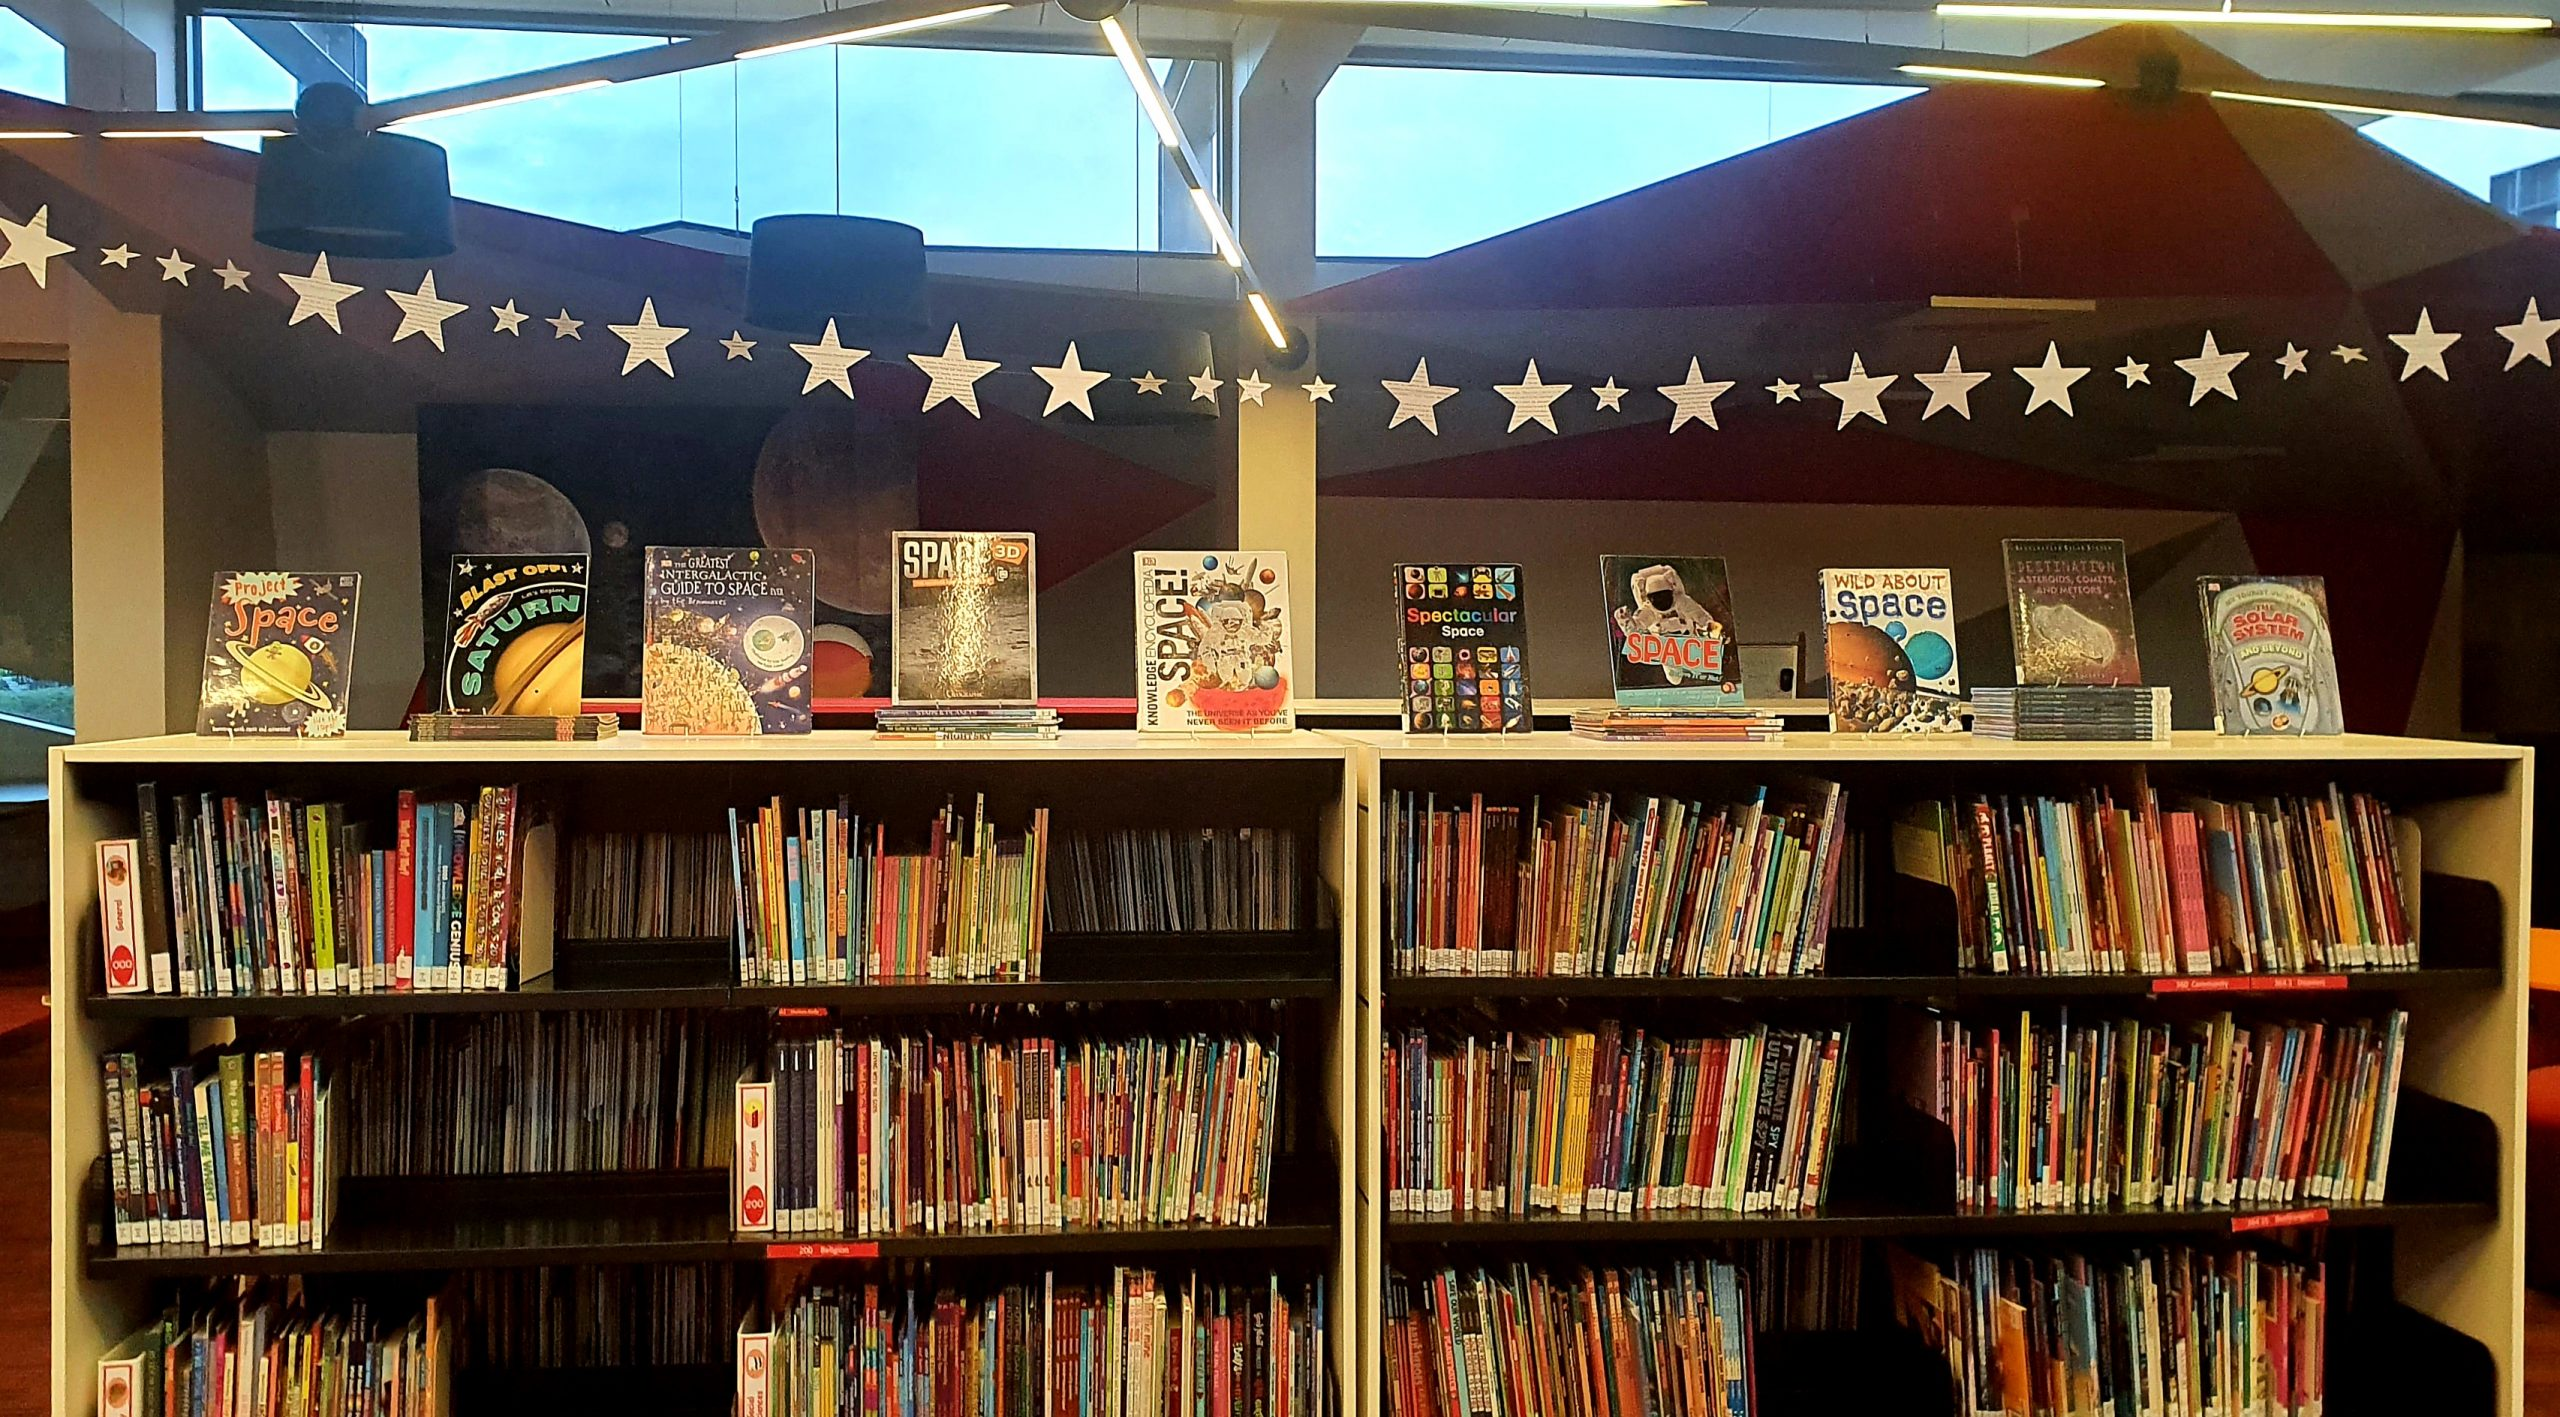 Make a Star Garland From Old Books